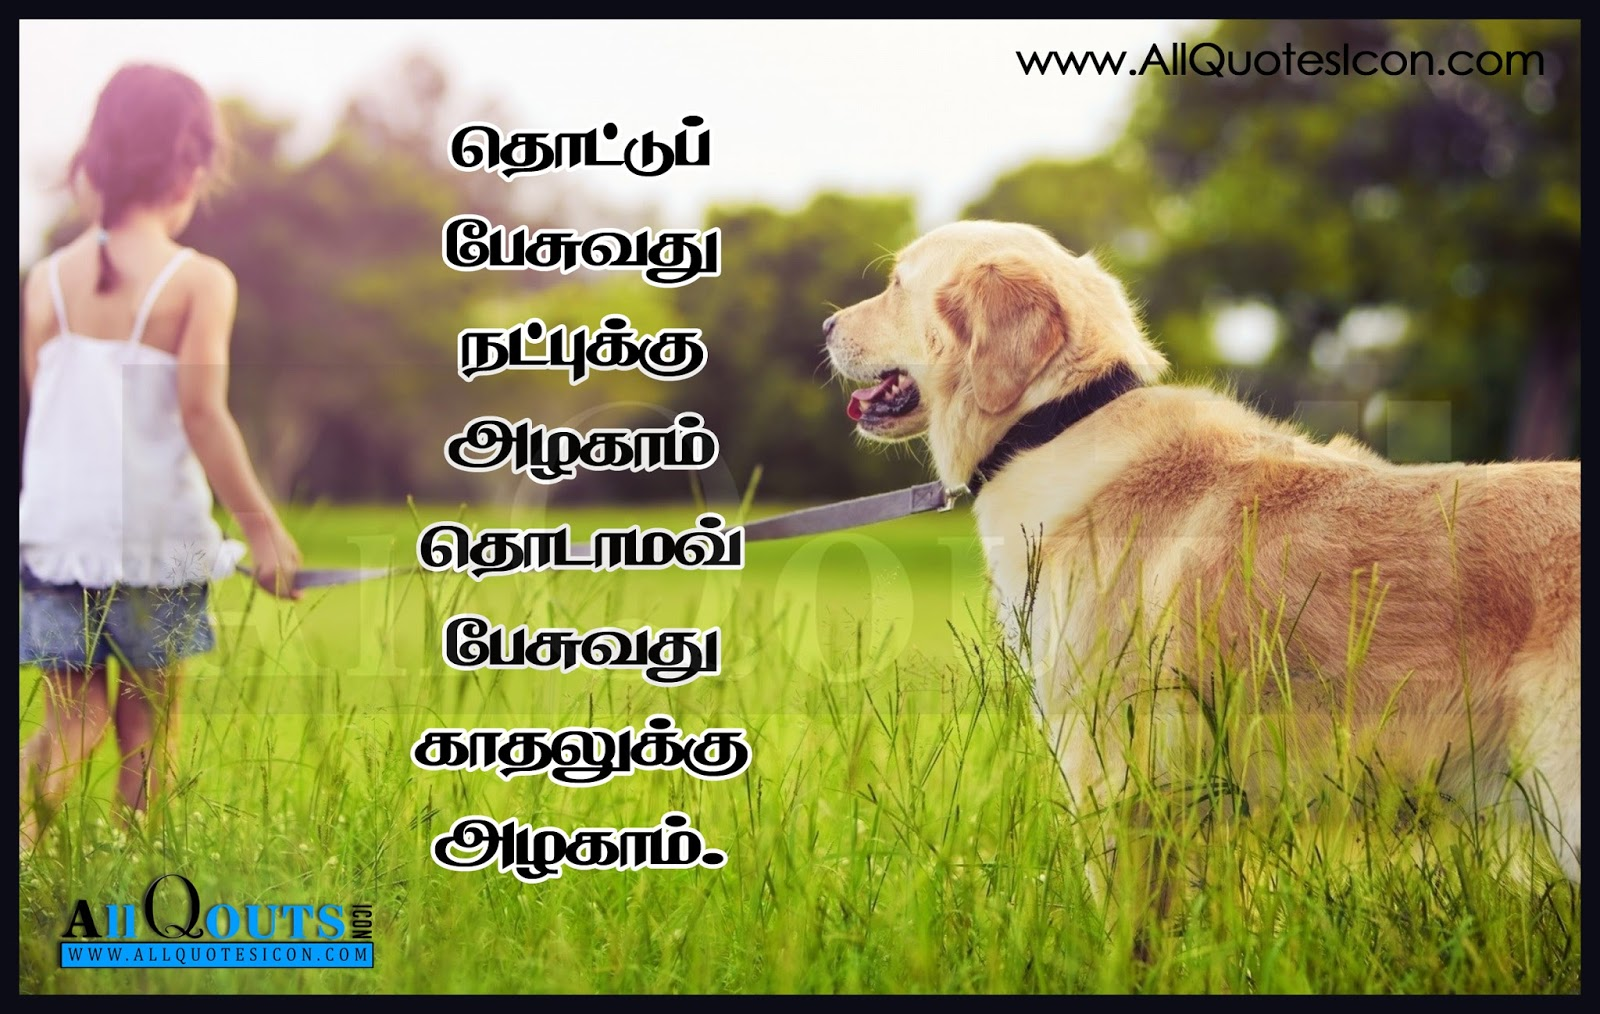 Cute friendship day image with tamil quote